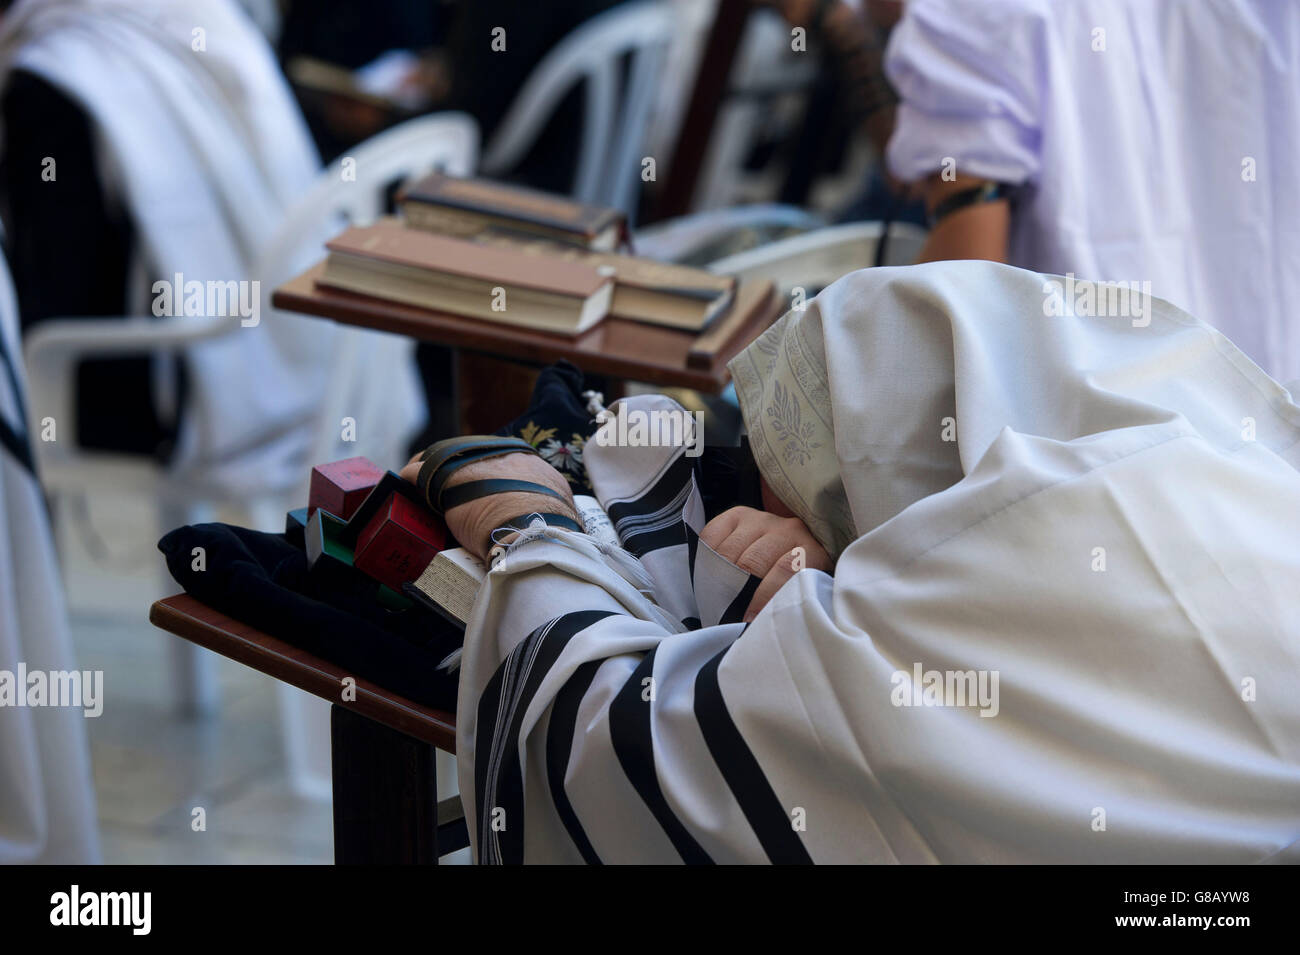 Men praying at the Wailing Wall, Jewish Quarter of the Western Wall Plaza, Old City, Jerusalem, Israel, Middle East. - Stock Image